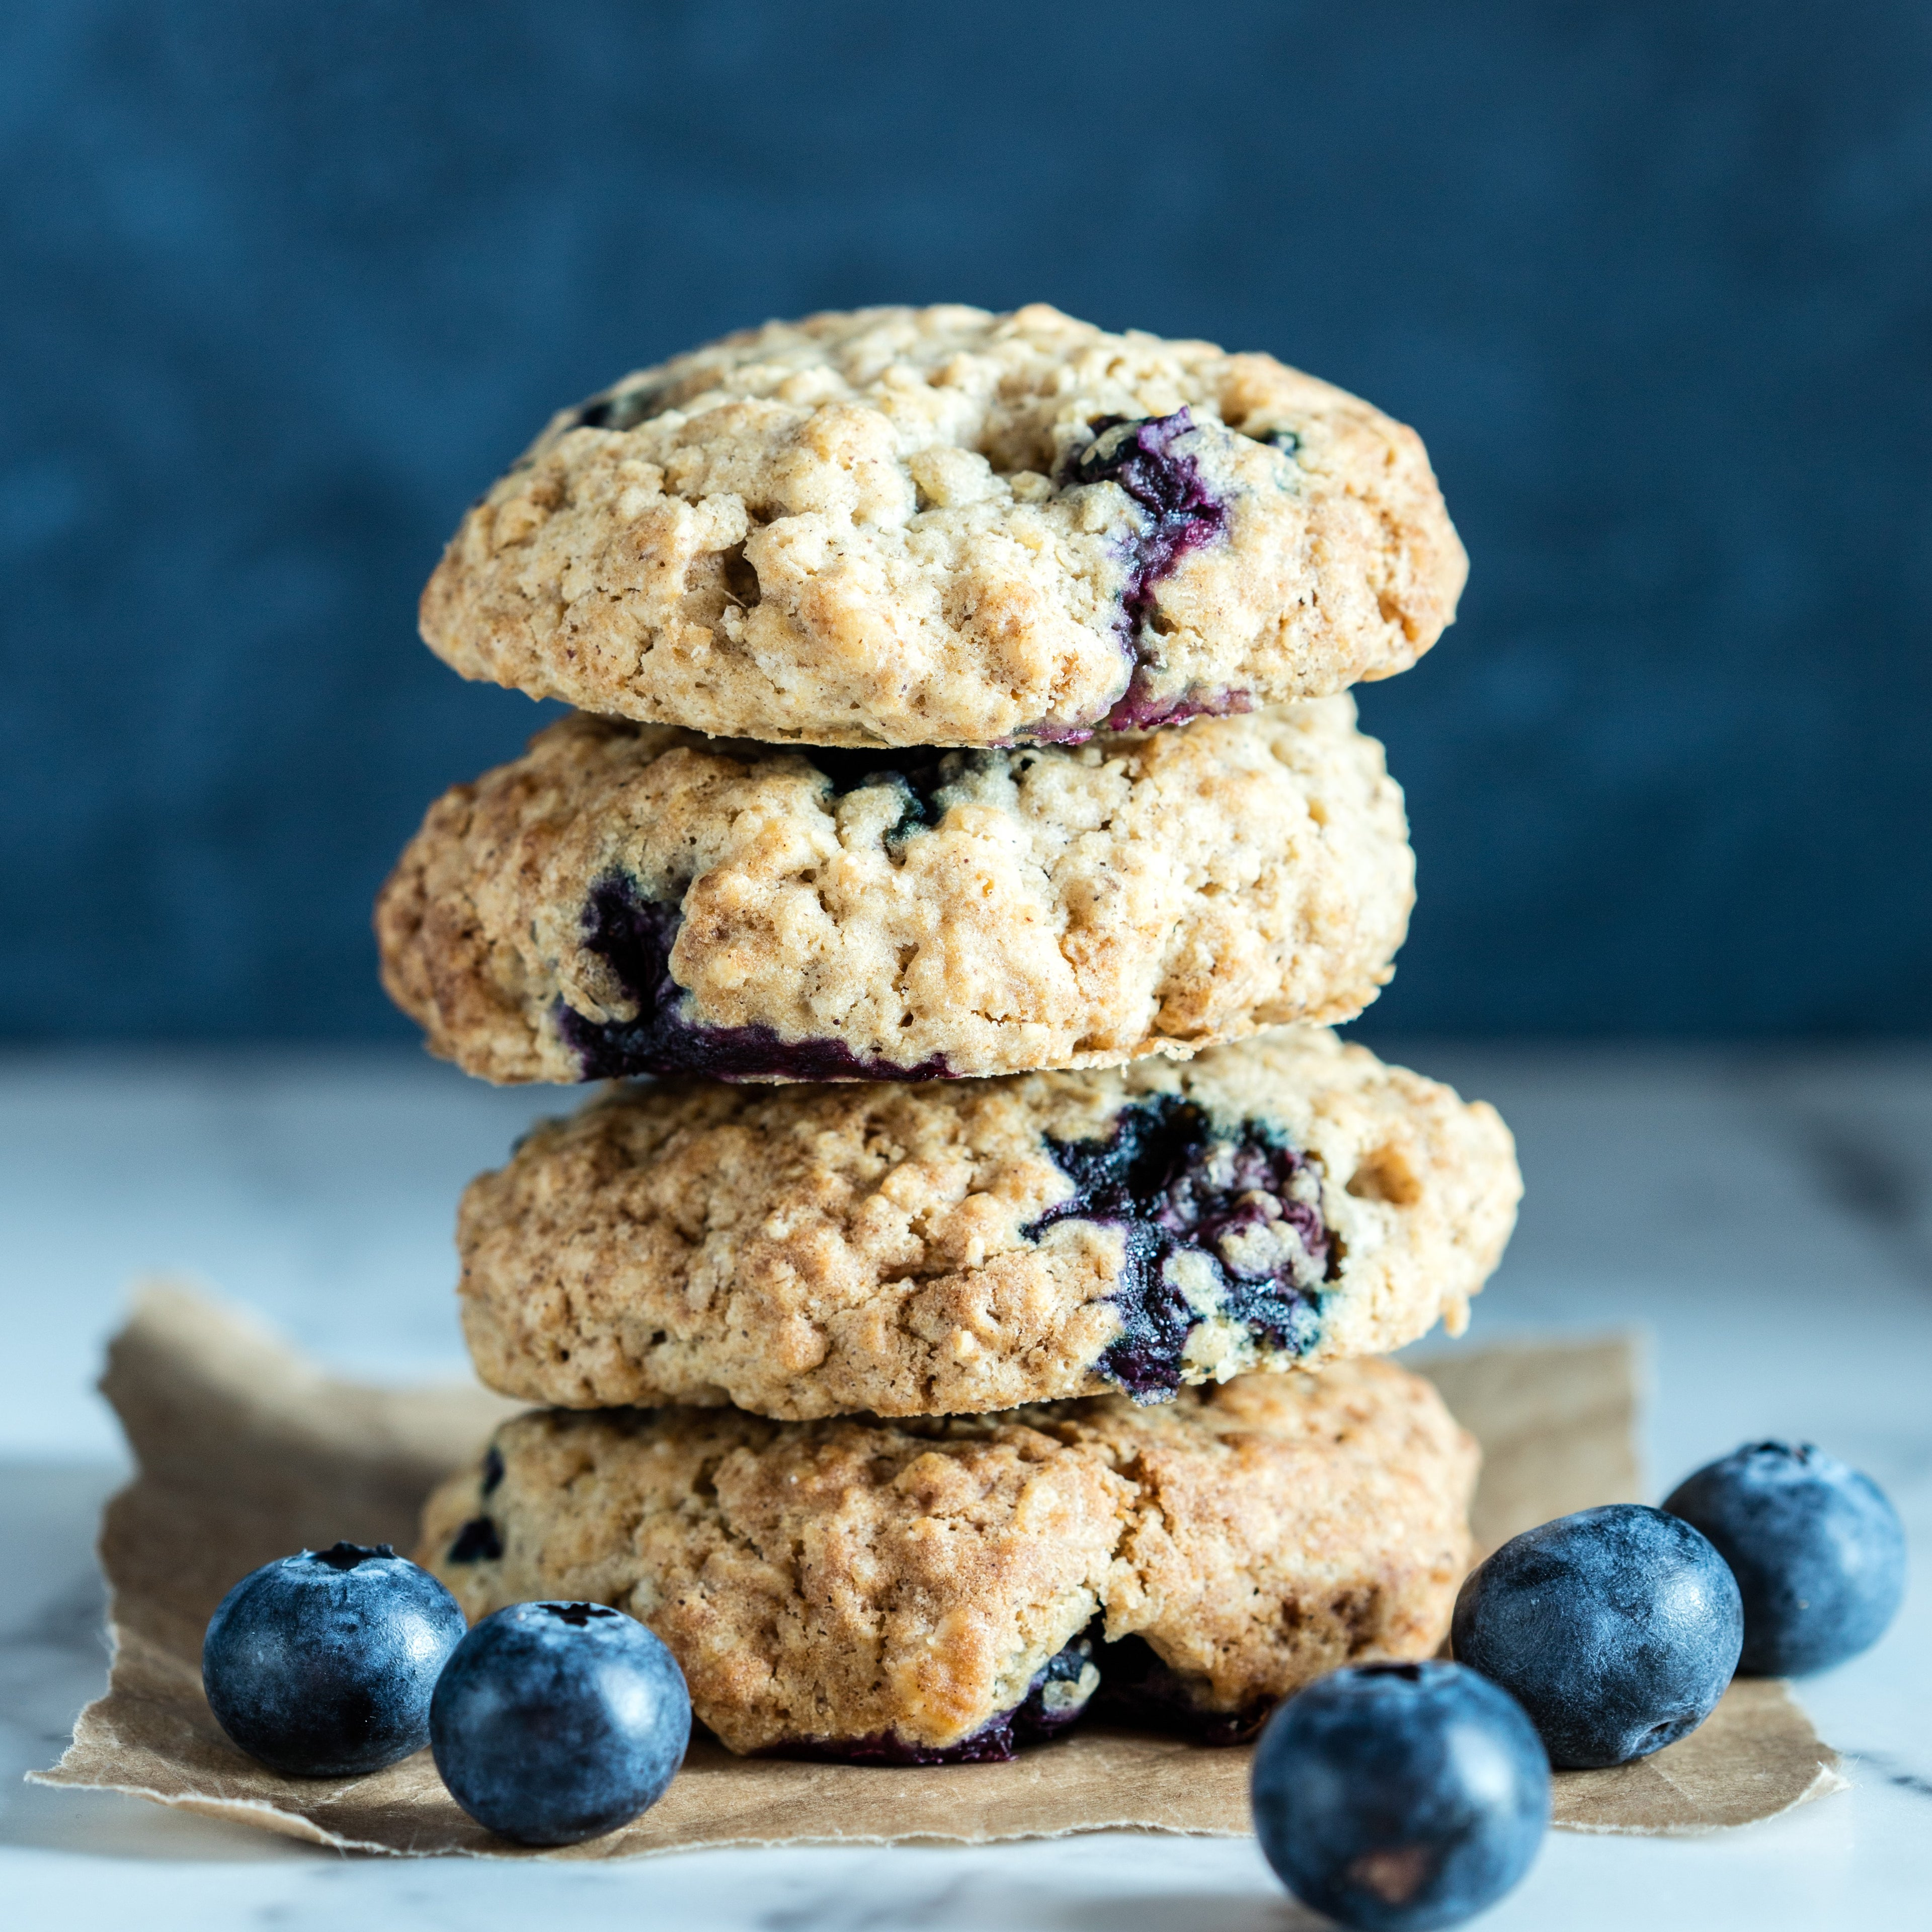 Truvia-Blueberry-Oatmeal-Cookies.jpg